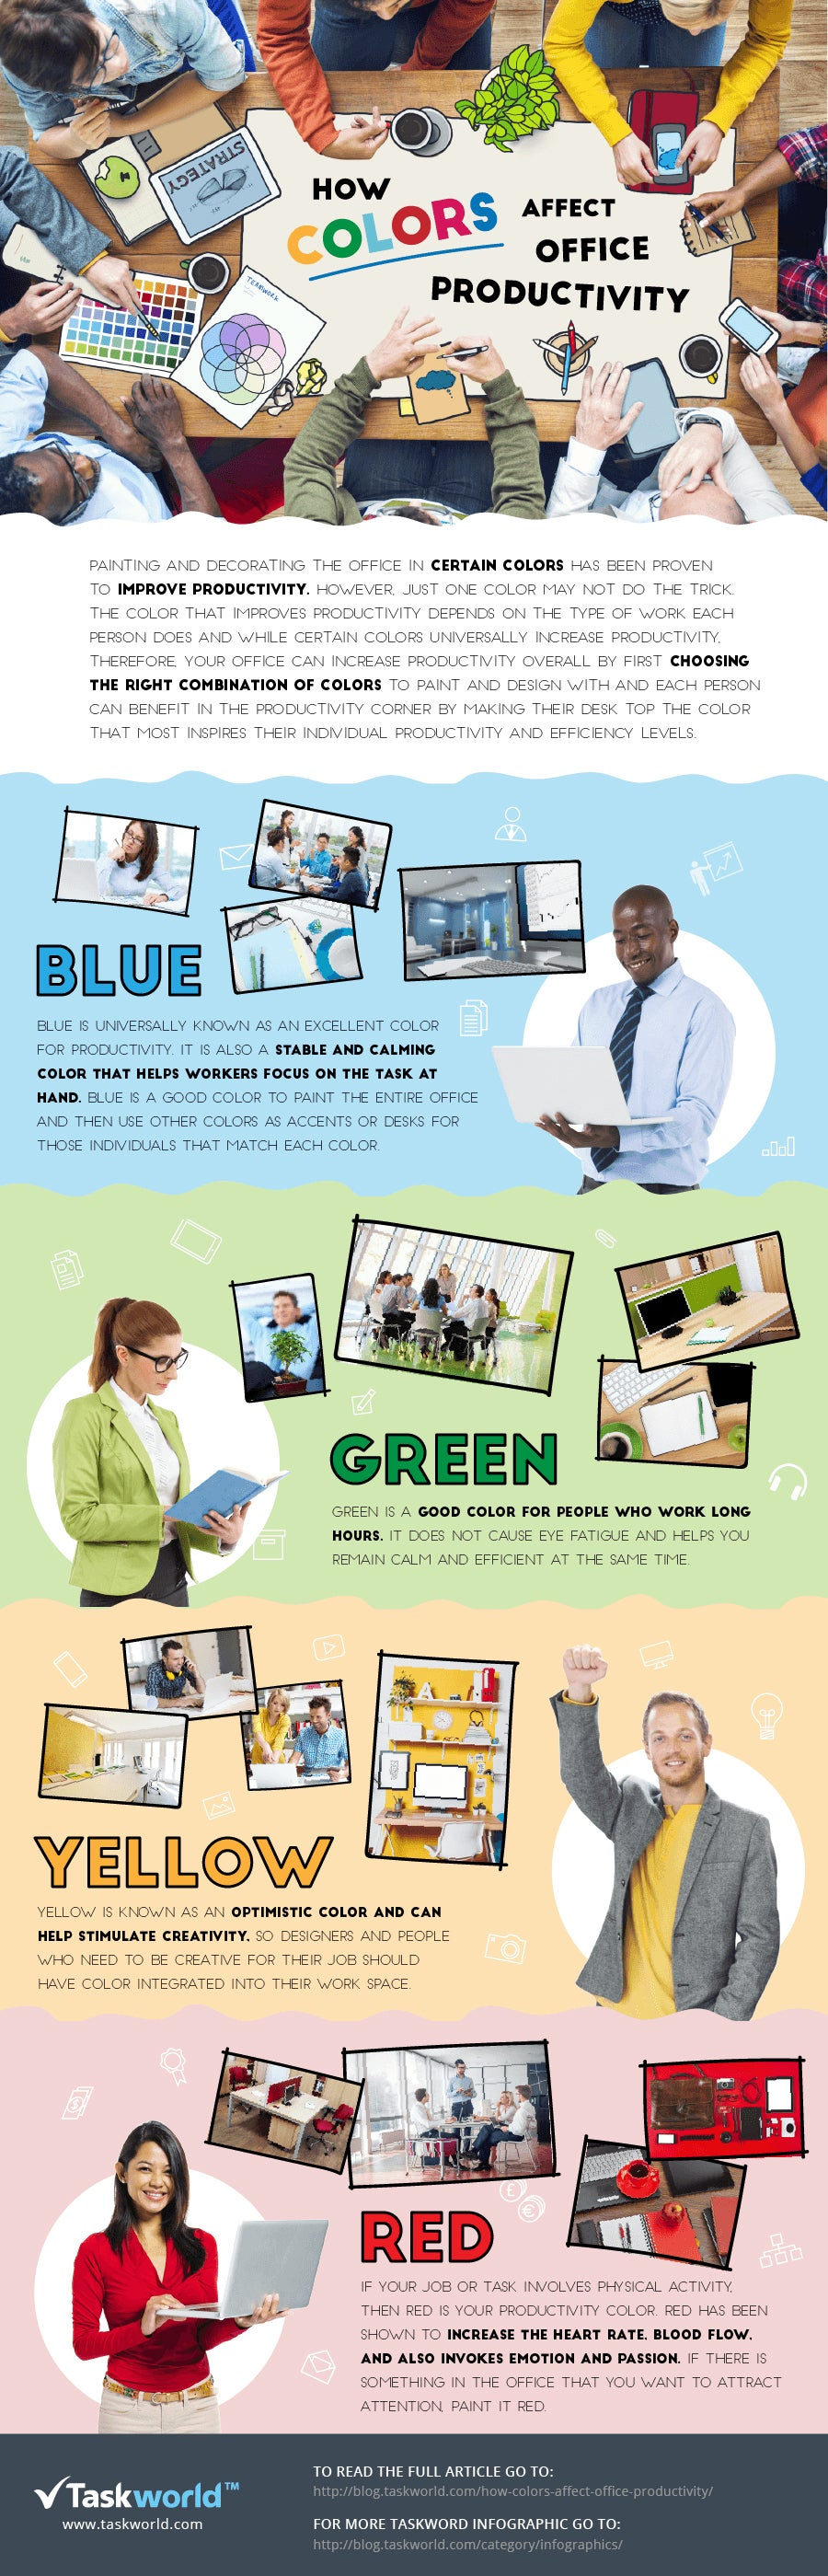 How The Color Of Your Office Impacts Productivity (Infographic)